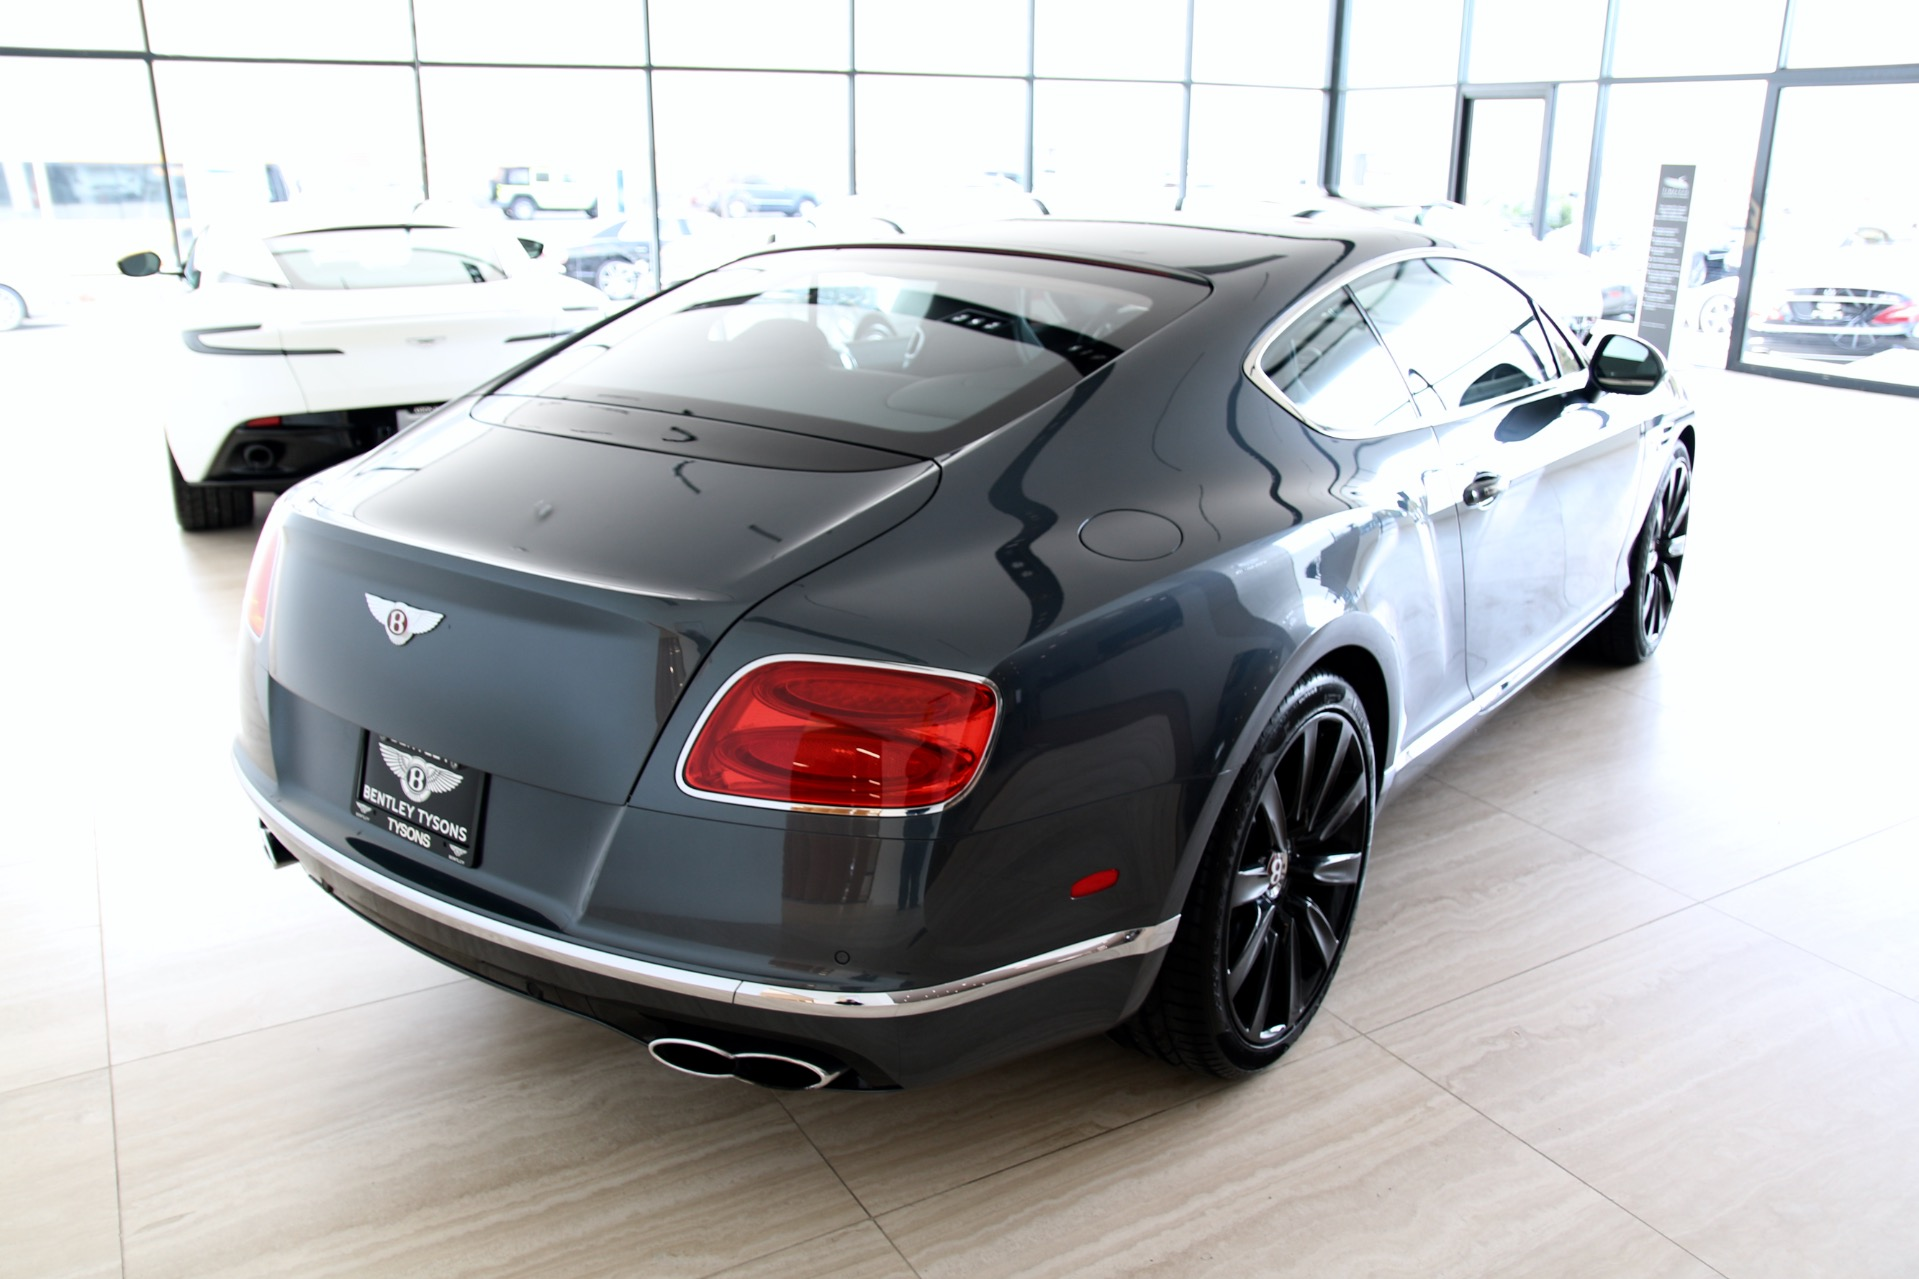 lease l vienna htm speed for near new used c sale main va gt stock continental bentley